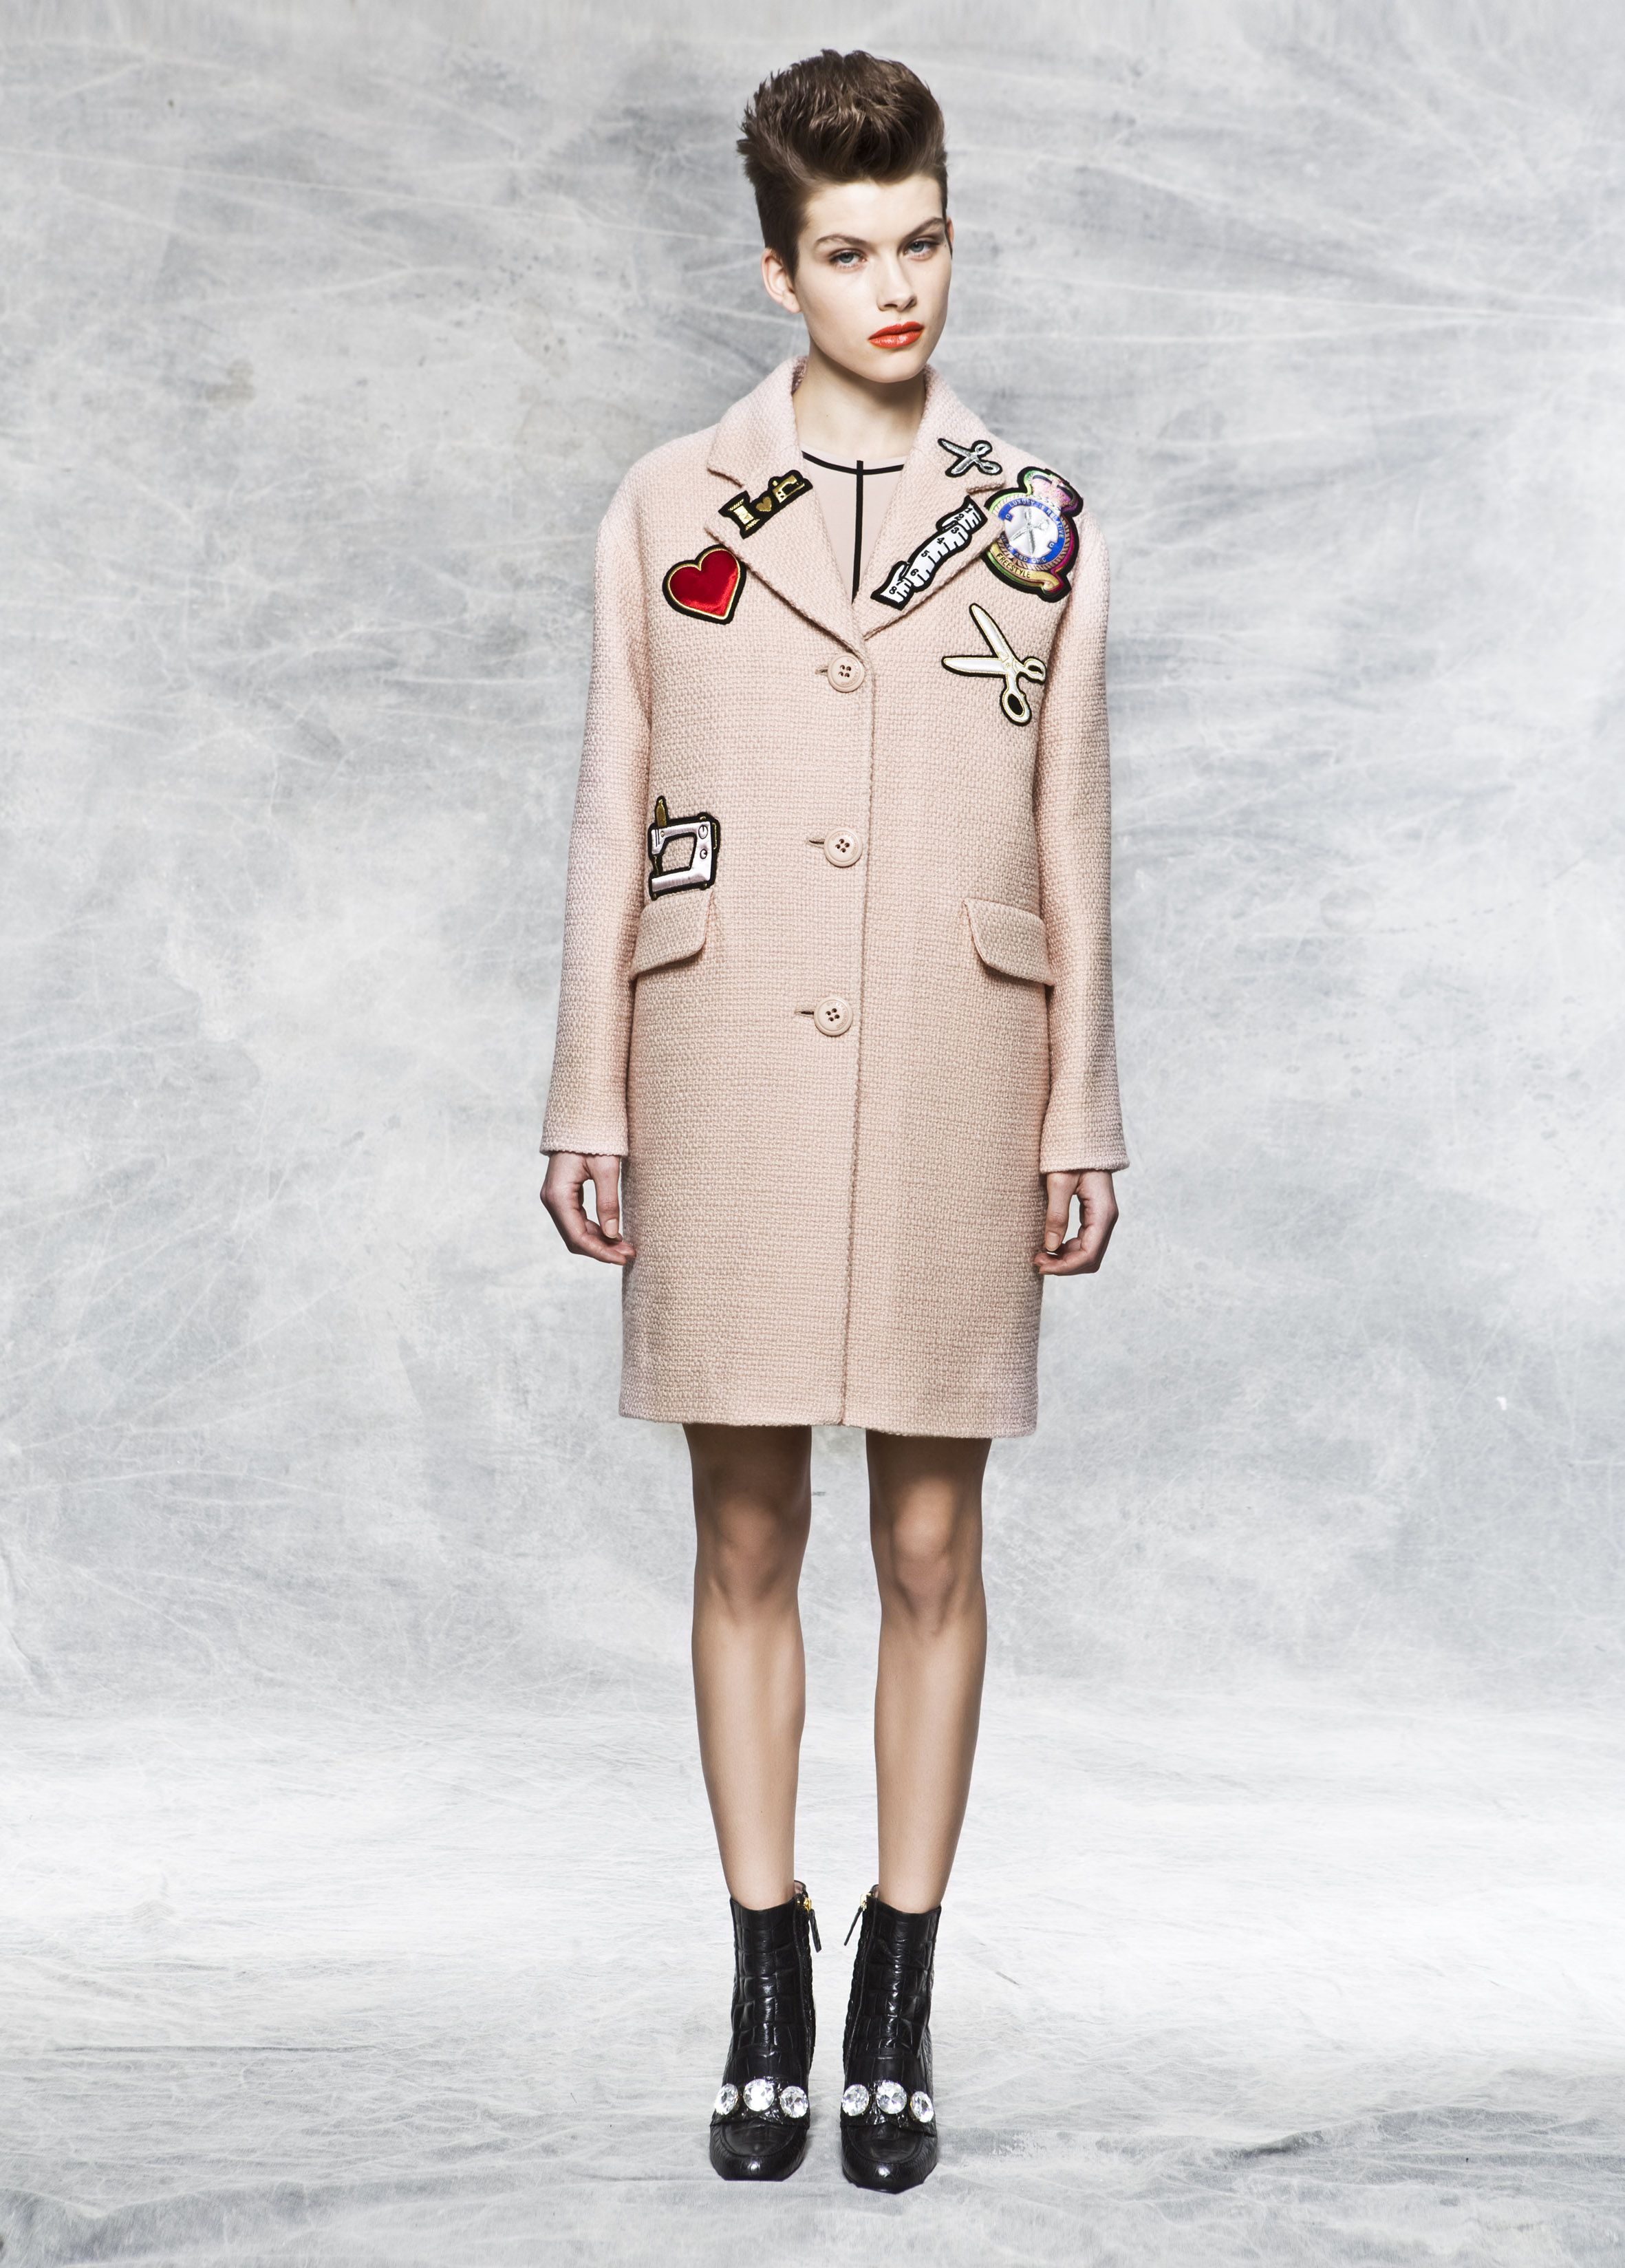 7b24e894d76 Moschino Cheap and Chic Fall Winter 2014-2015